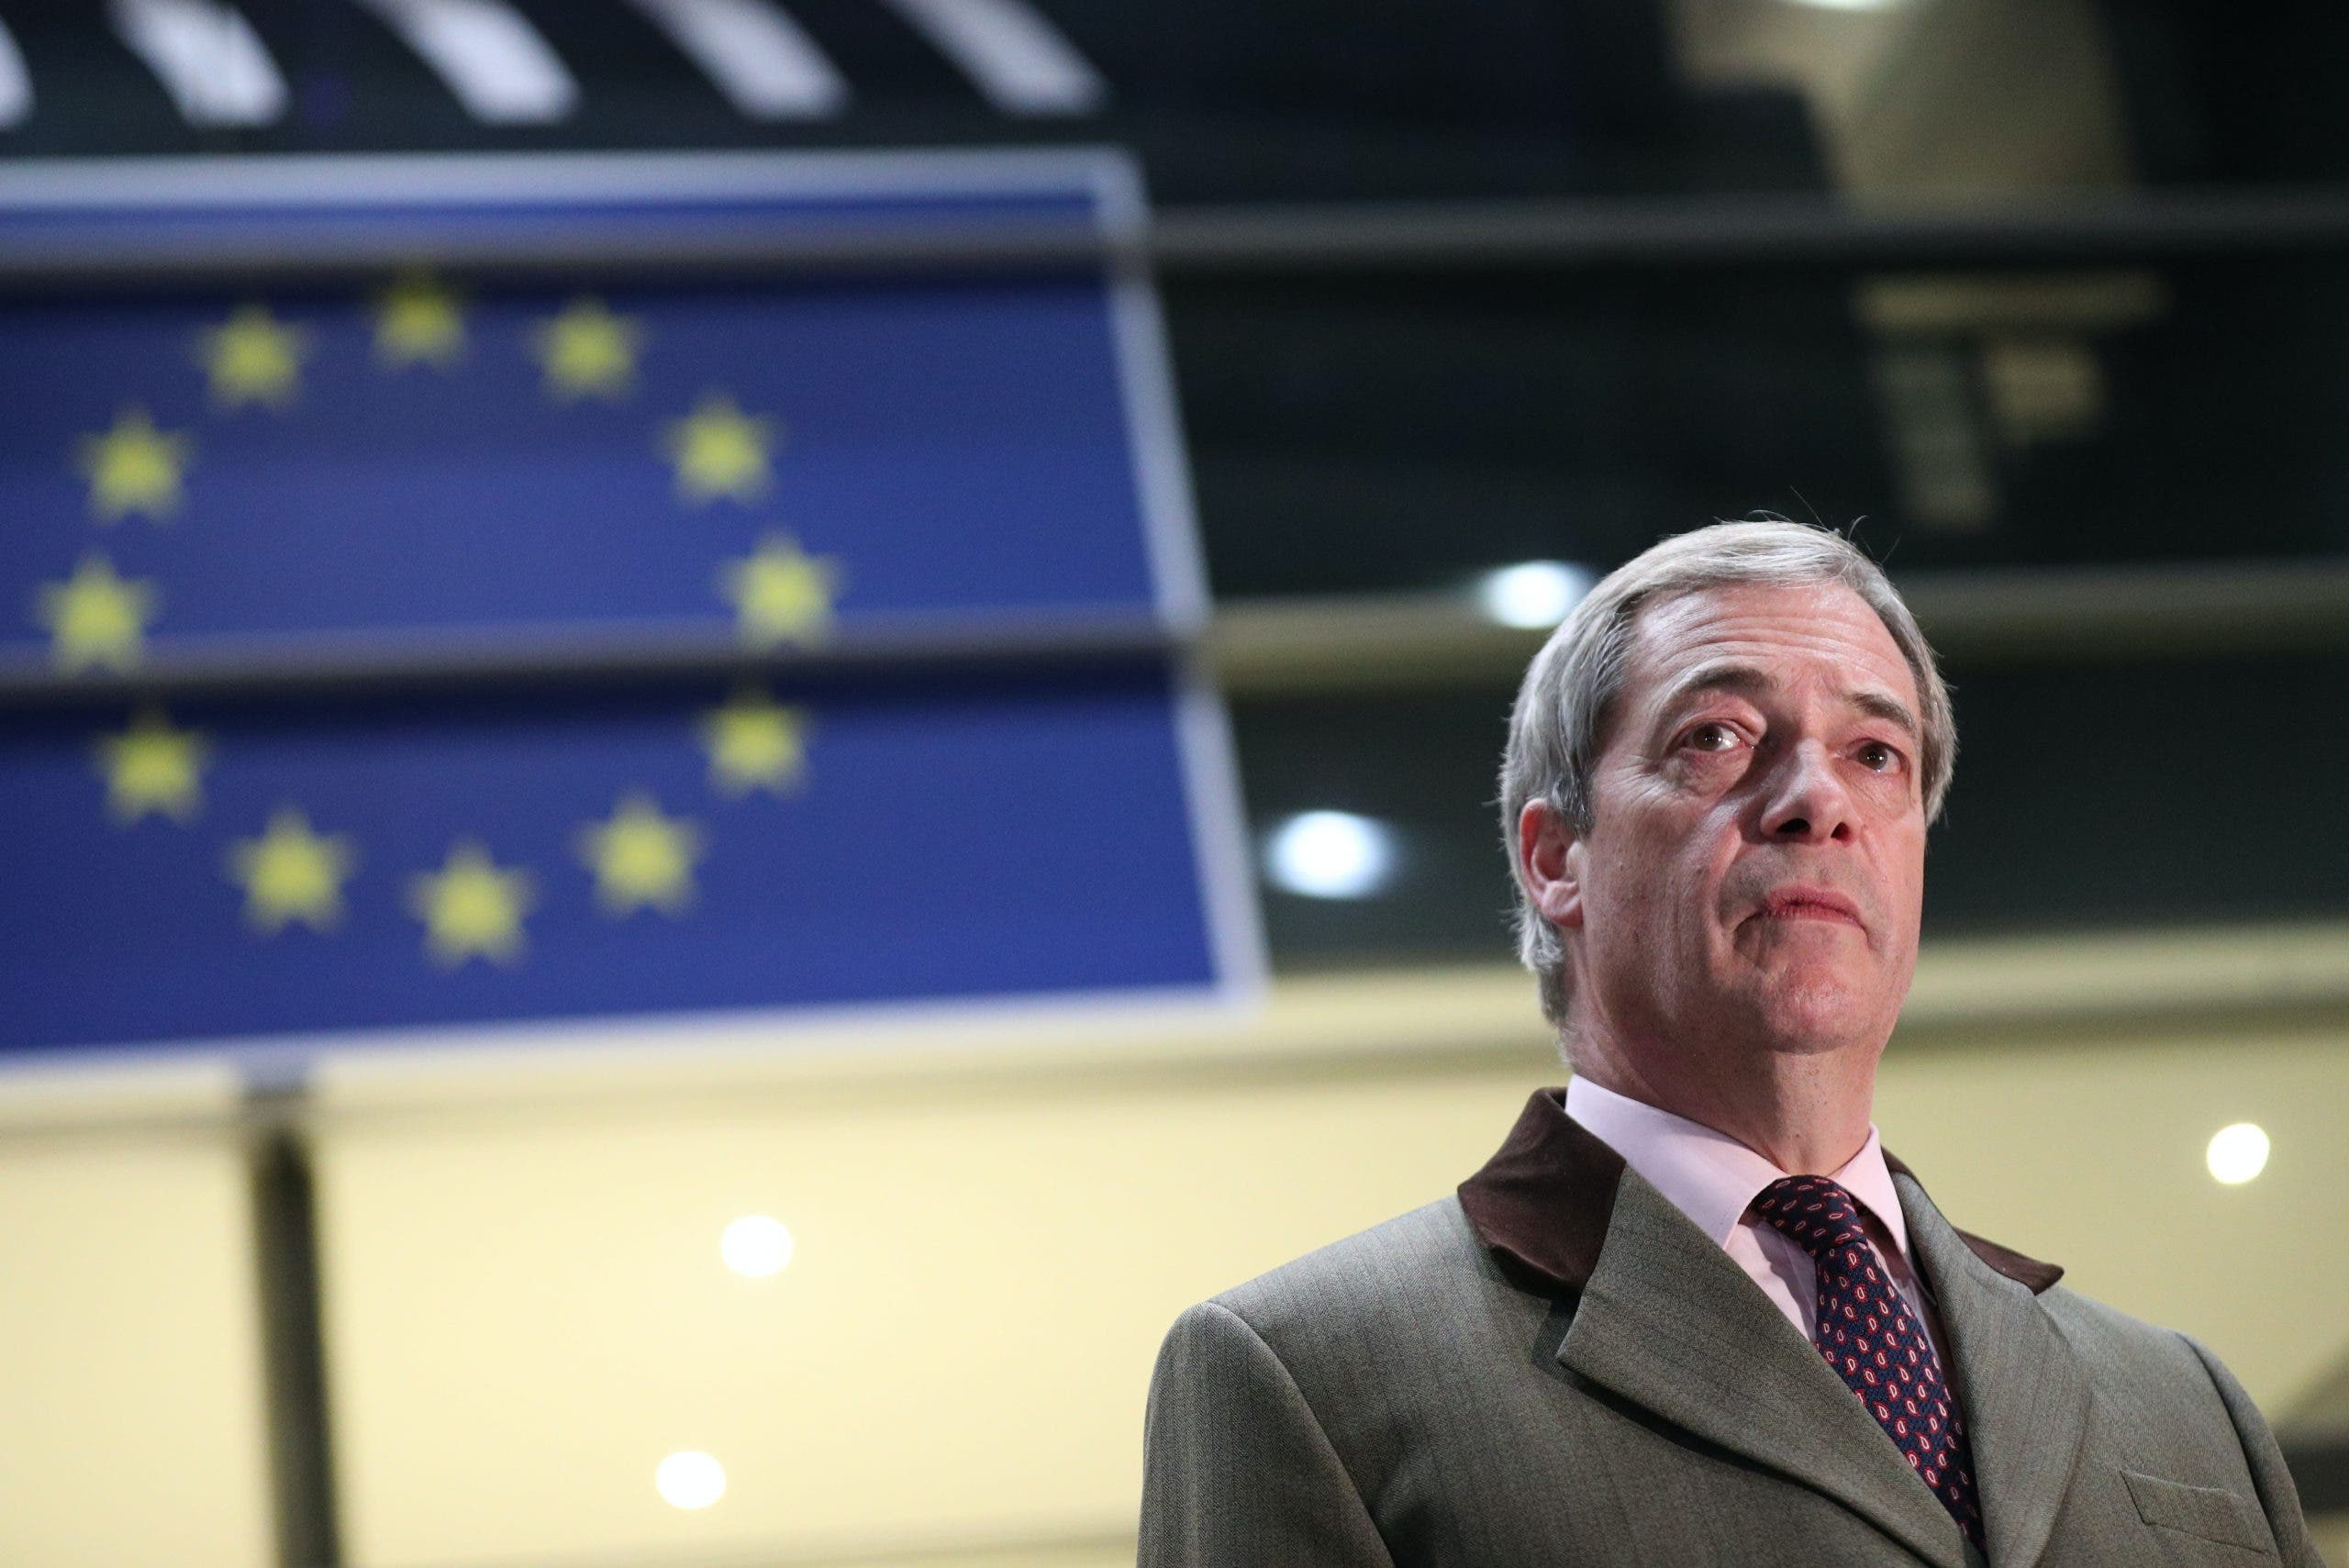 Farage is frantic about Brexit 'sell-out' due to Cummings exit